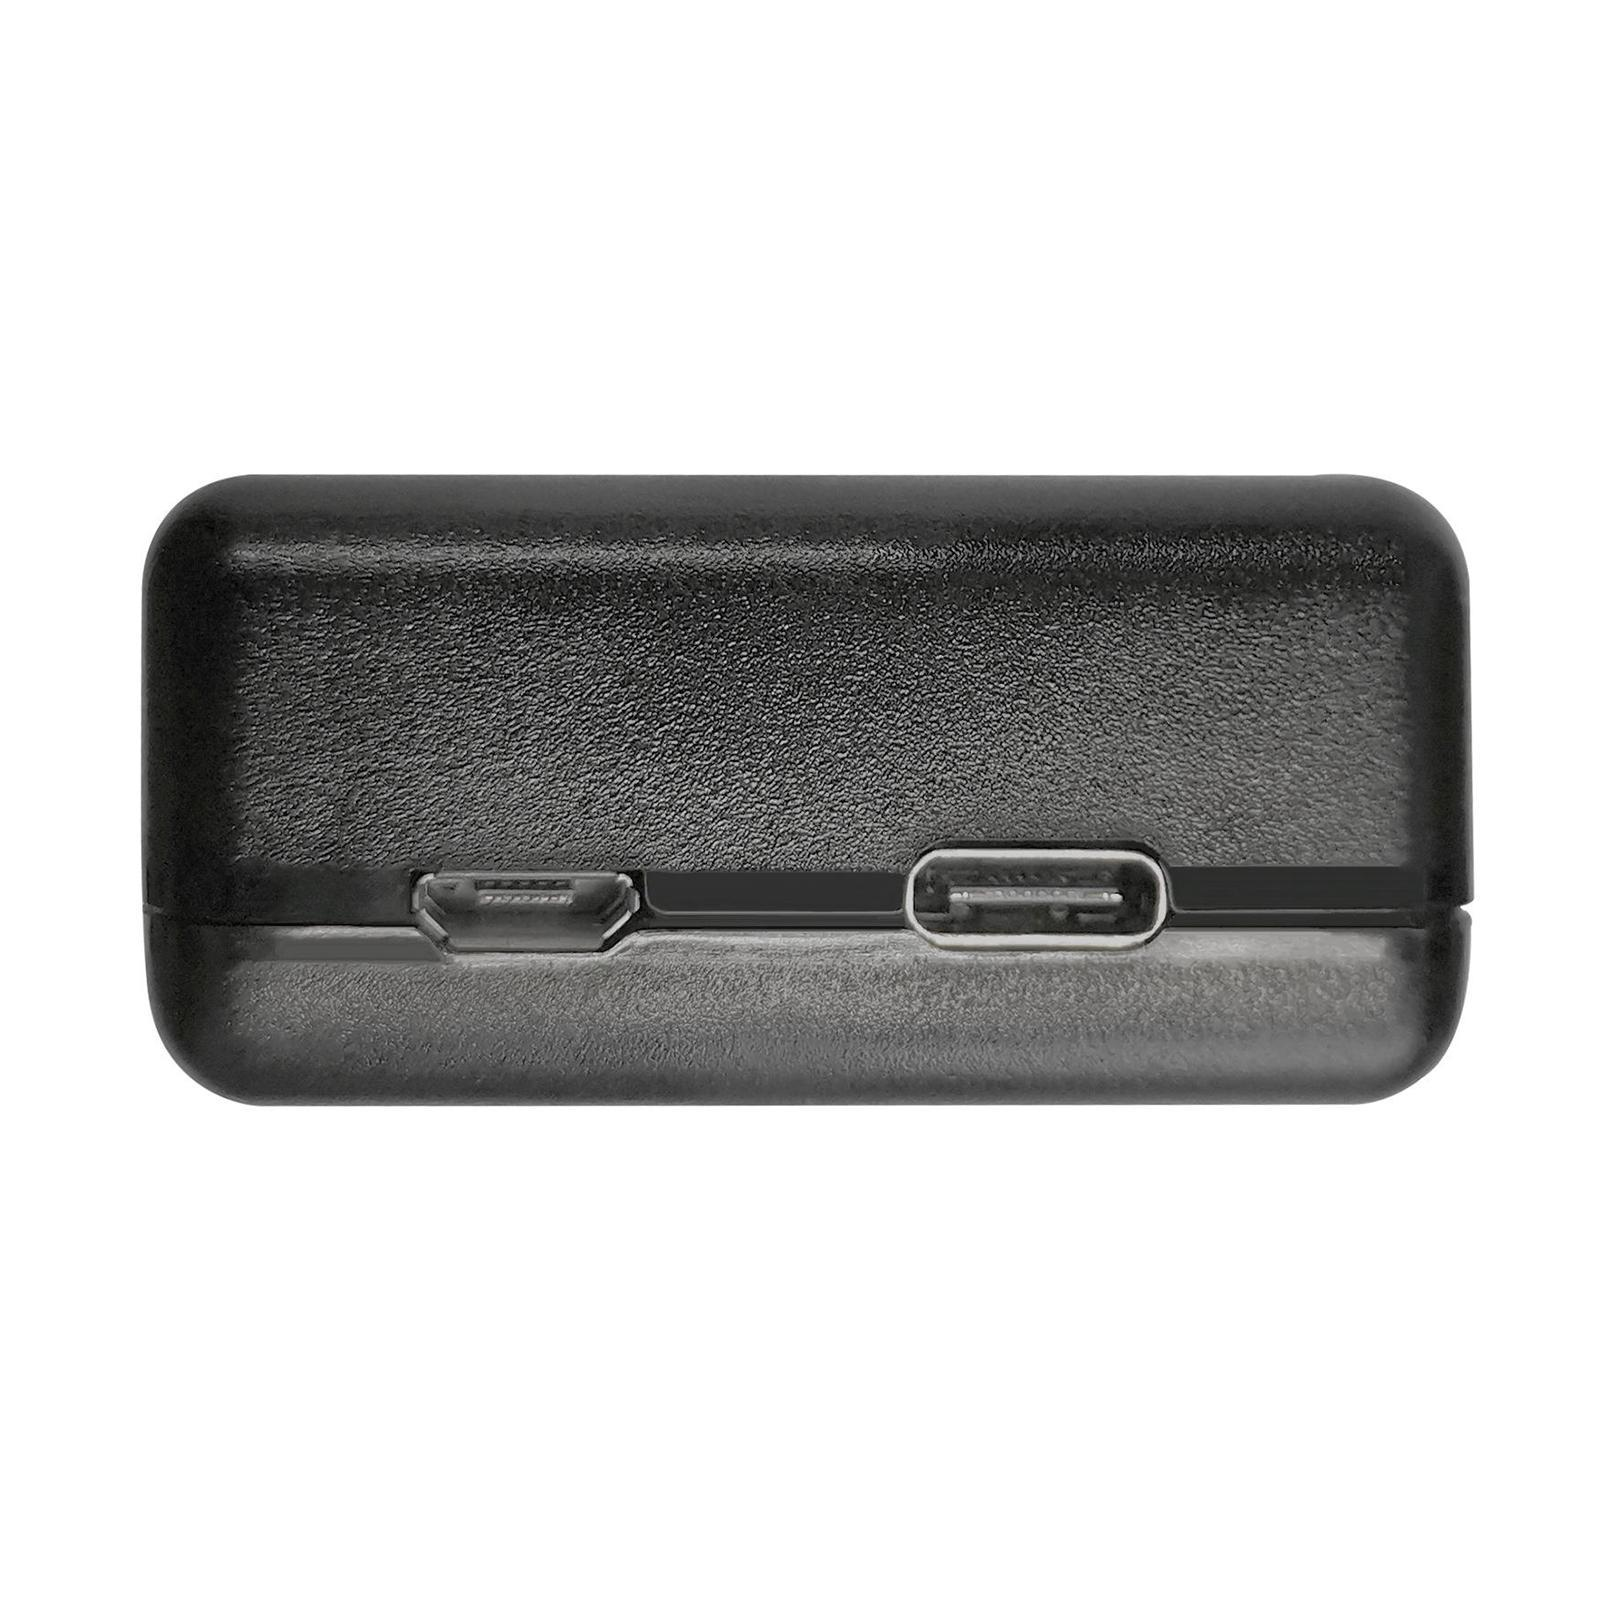 thumbnail 18 - Replace Batteries 1720mAh USB Quick Charger with Cord for   Hero 9 -Black